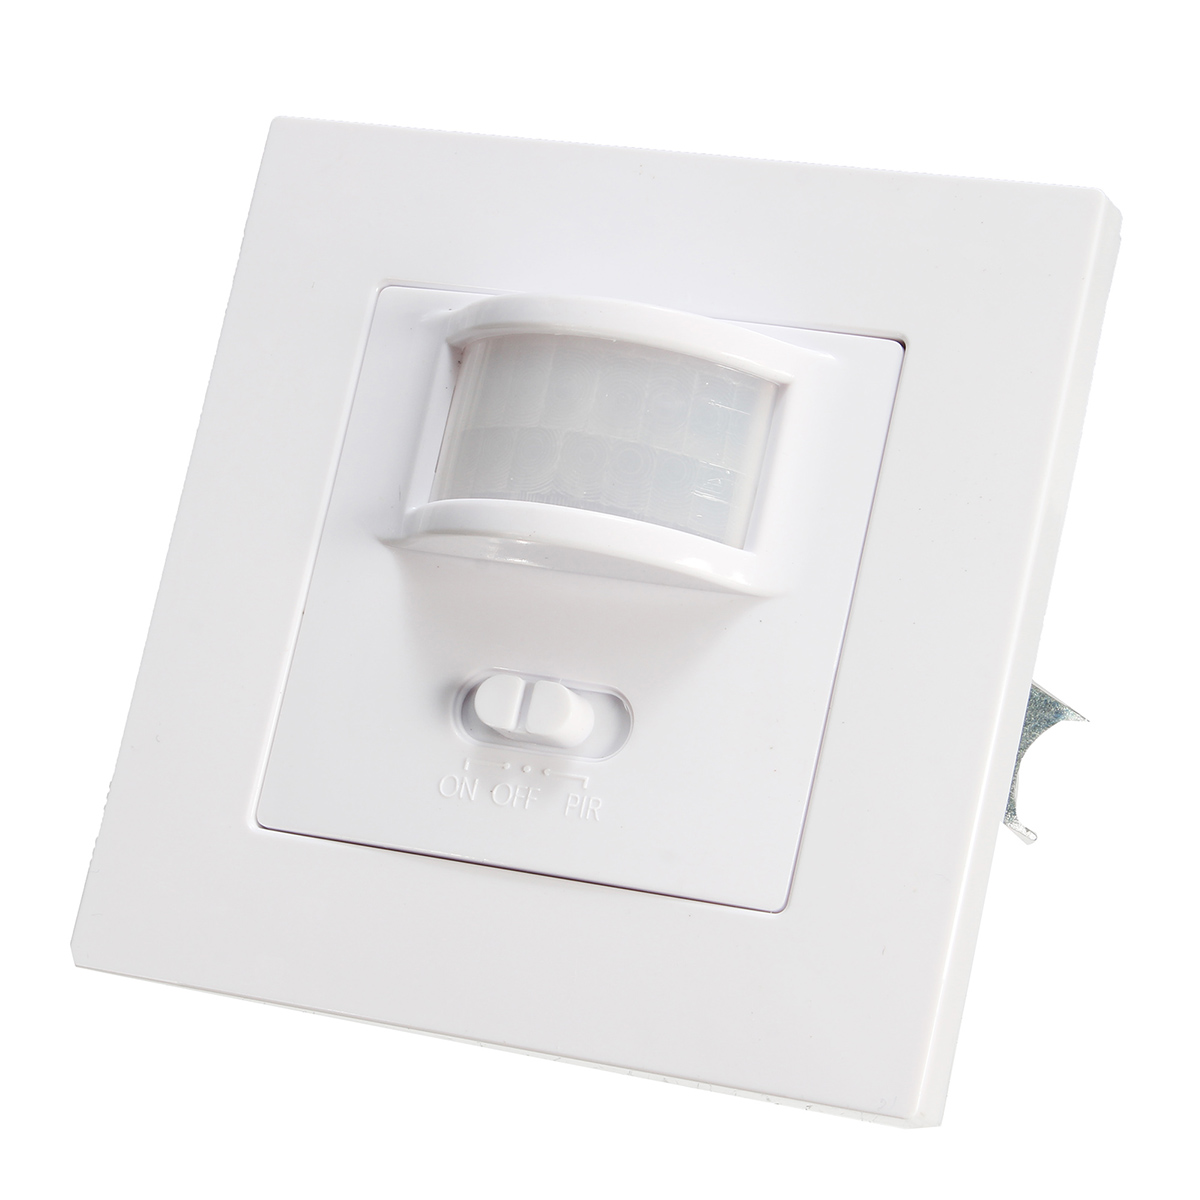 140 Degree Infrared PIR Motion Sensor Recessed Wall Lamp Bulb LED Strip Light Switch AC220-240V ...